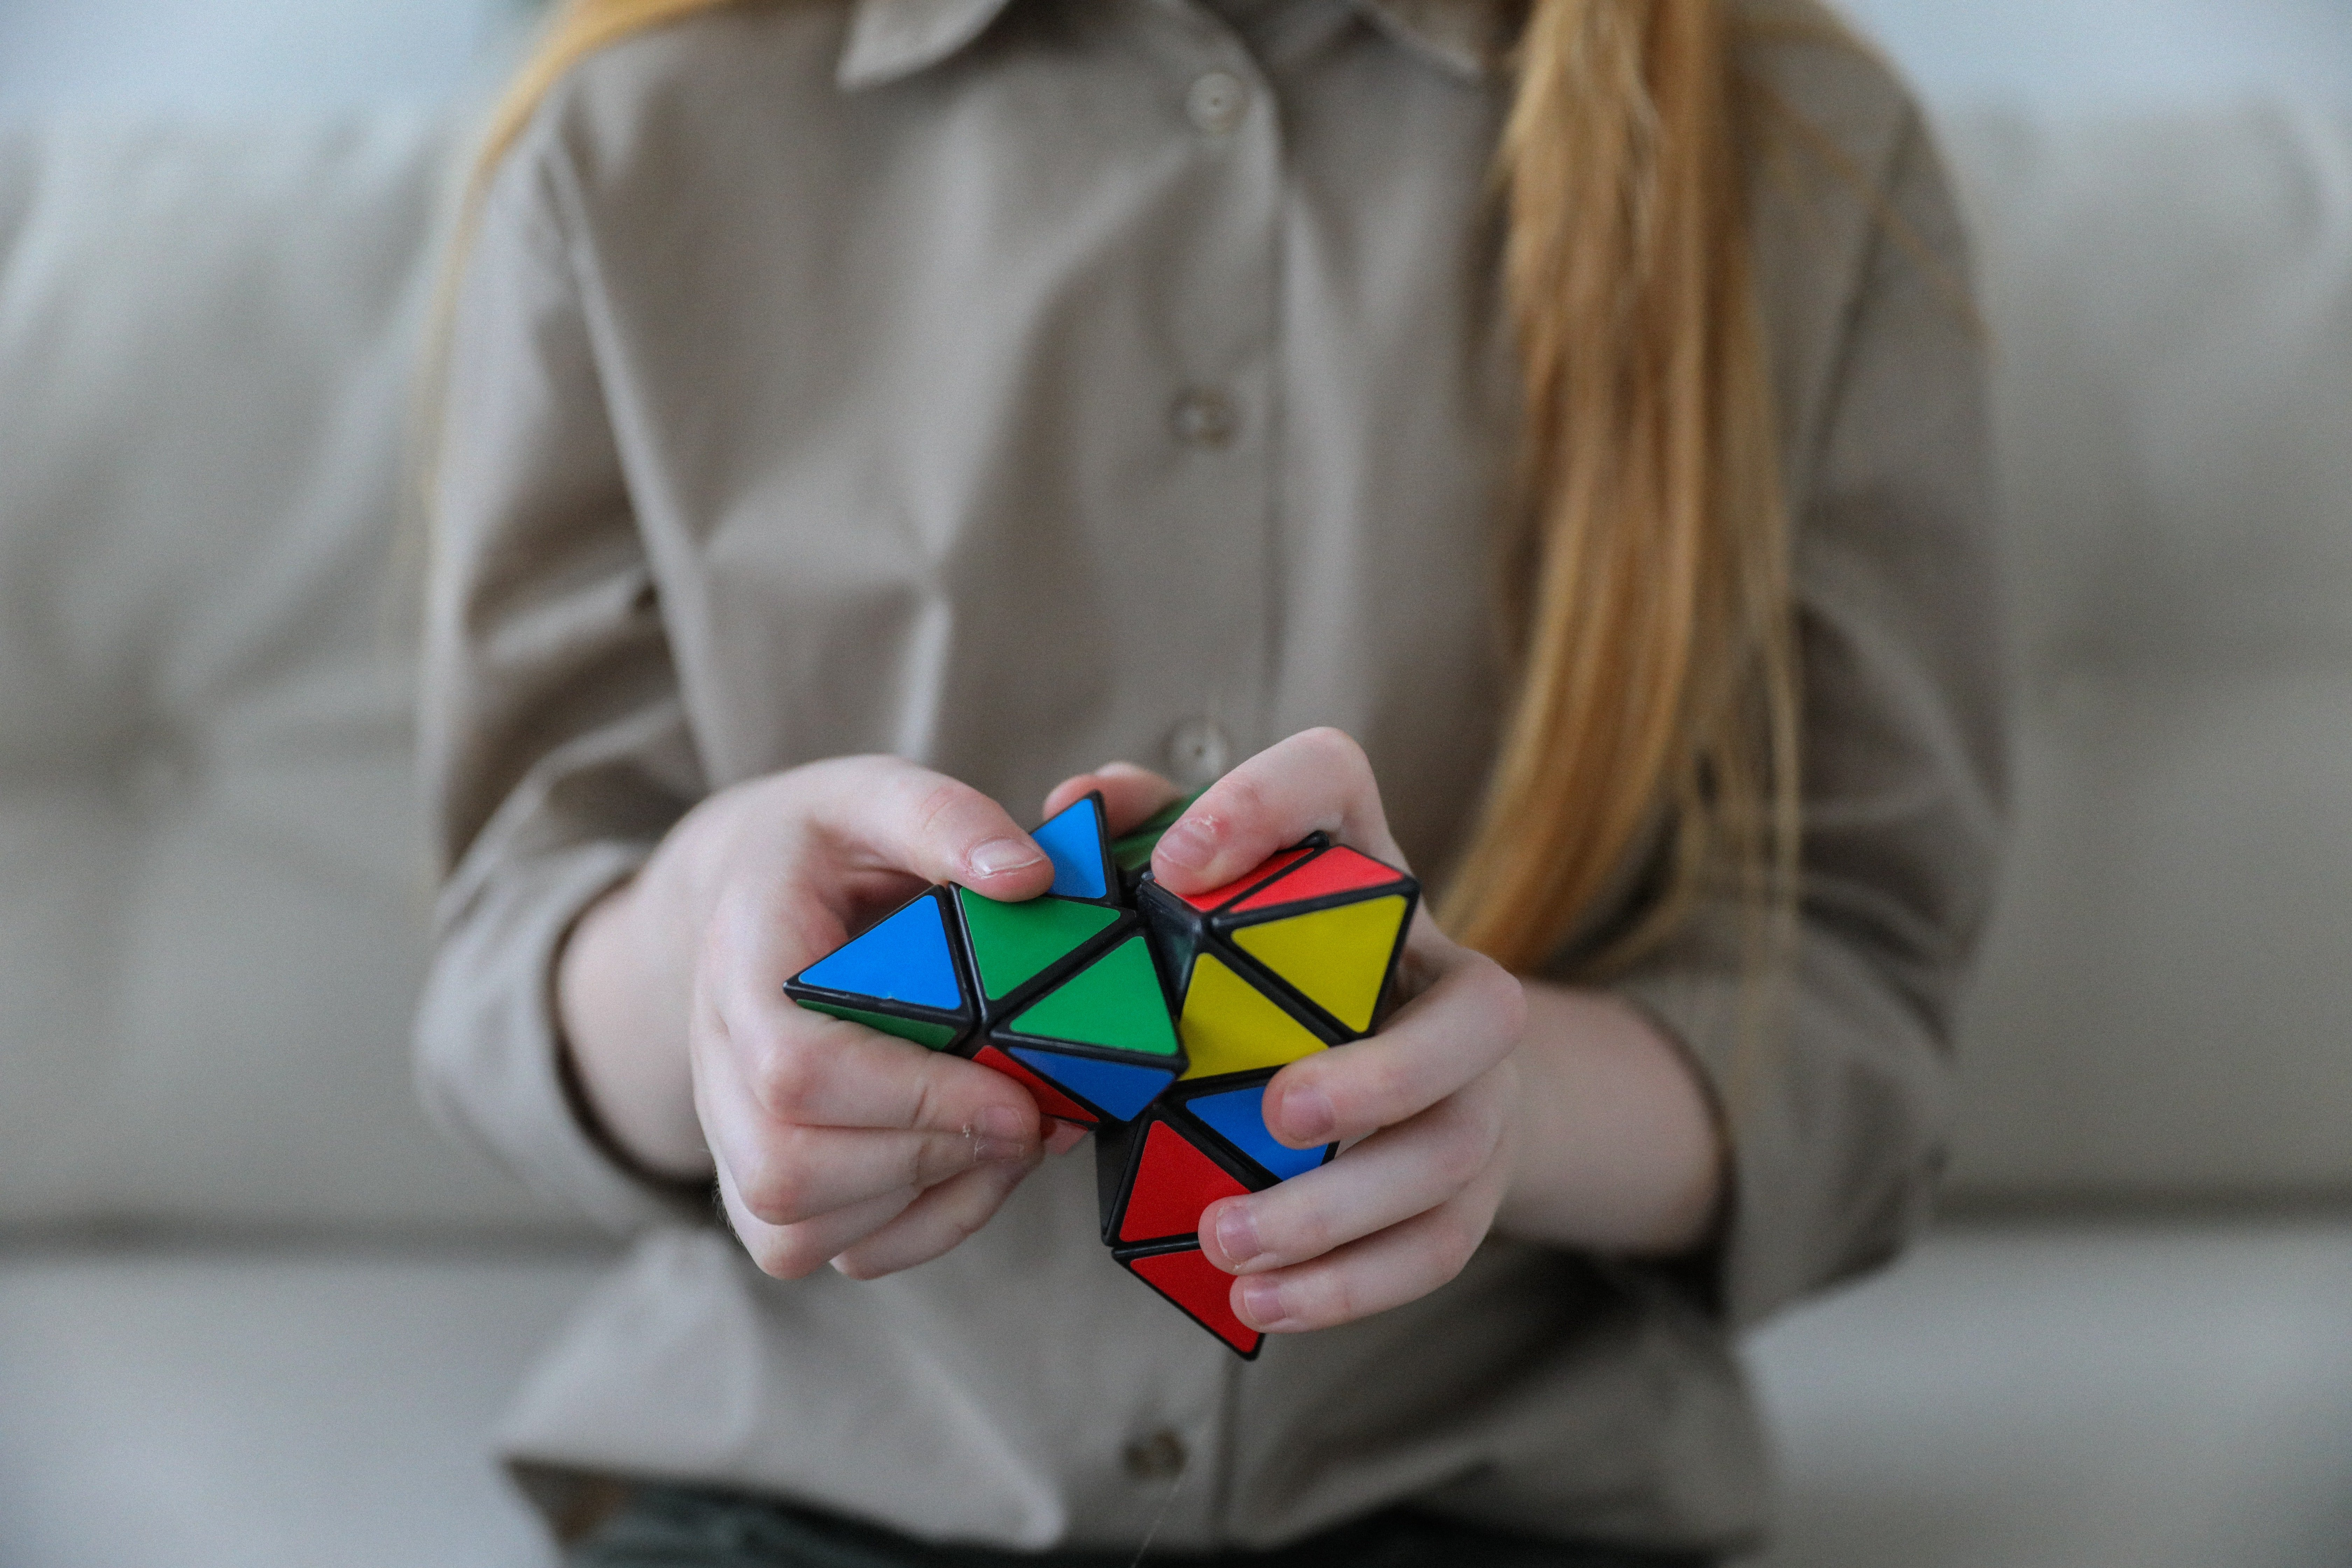 A girl holds a Rubix cube in her hands and it attempting to crack the code | Photo: Pexels